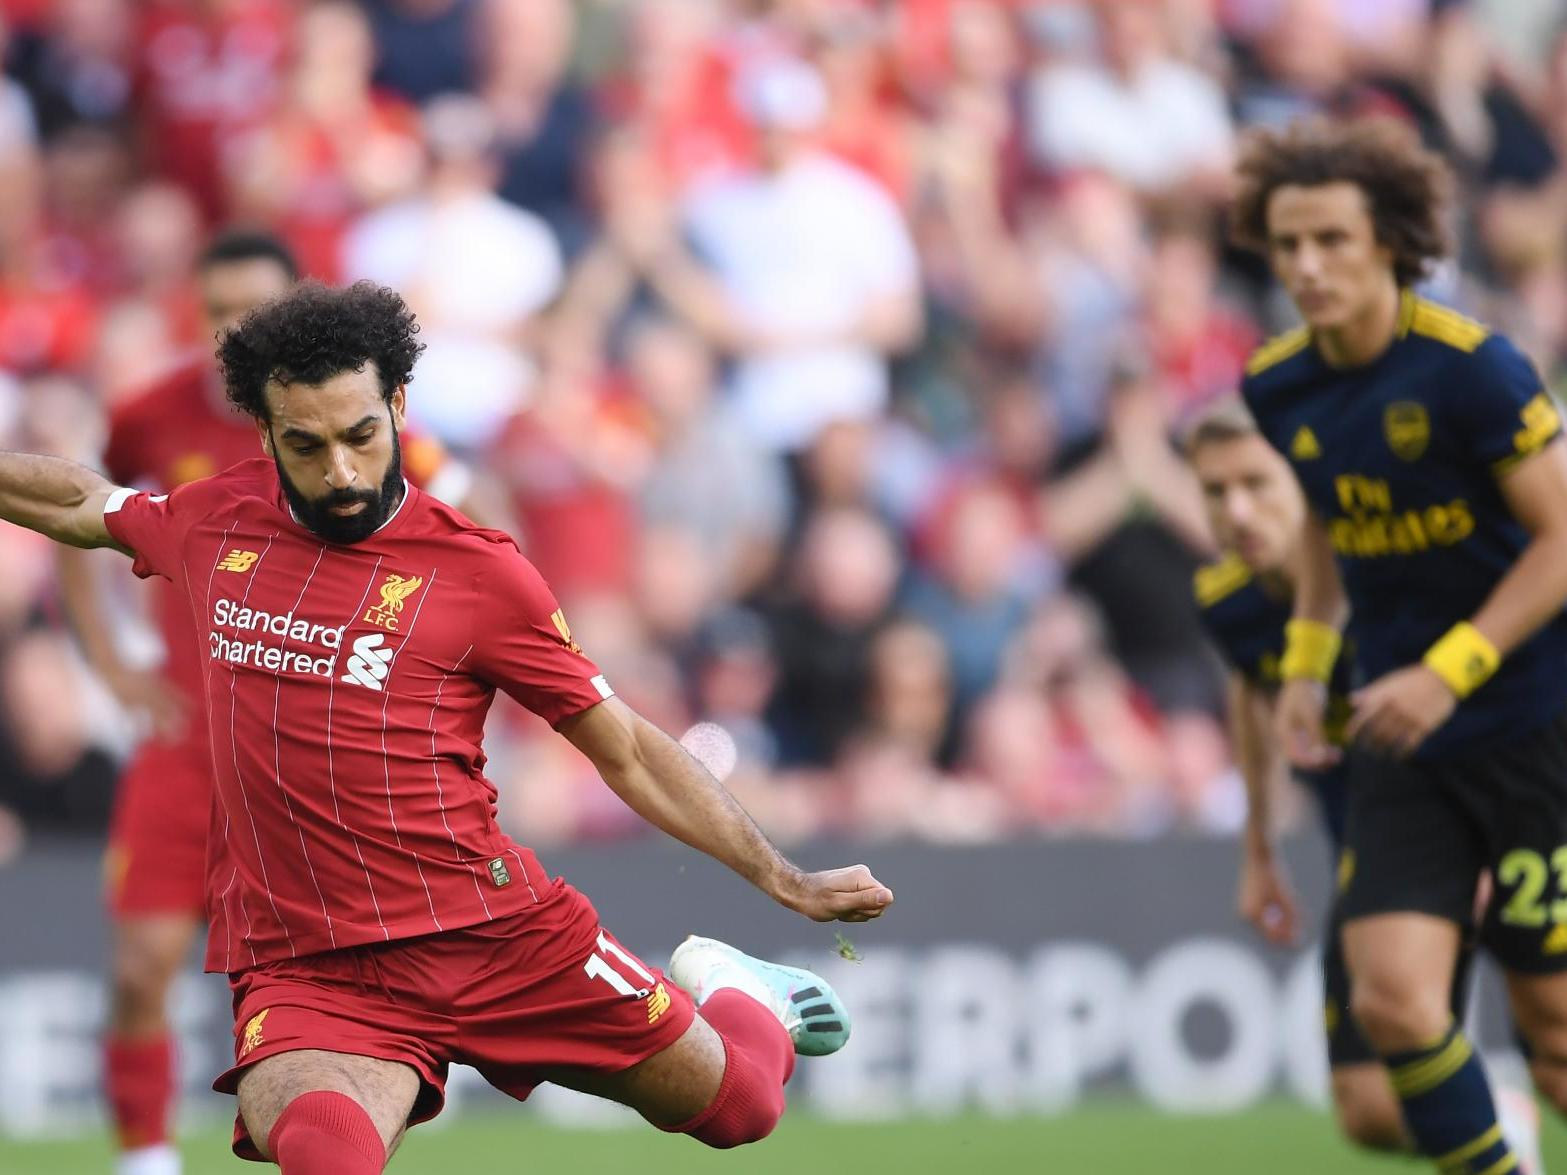 Arsenal Vs Liverpool Live Stream How To Watch Premier League Fixture Online And On Tv Tonight